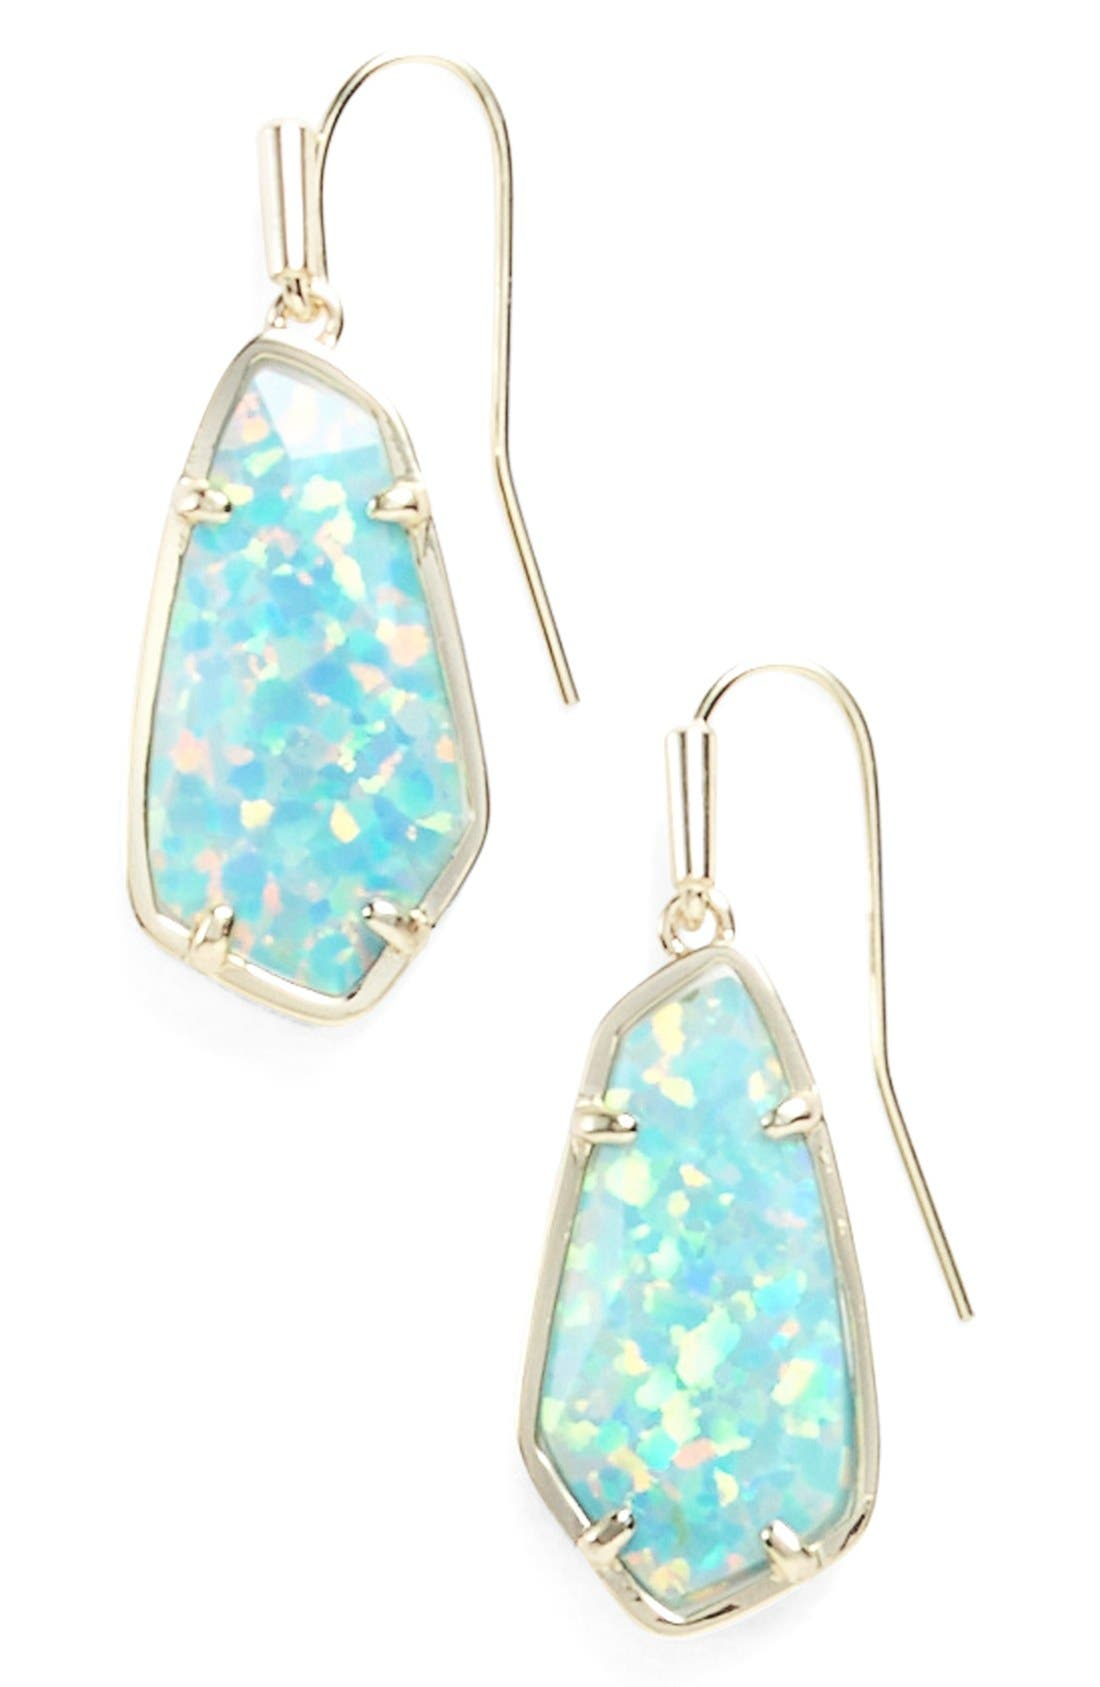 Main Image - Kendra Scott 'Camelia' Drop Earrings